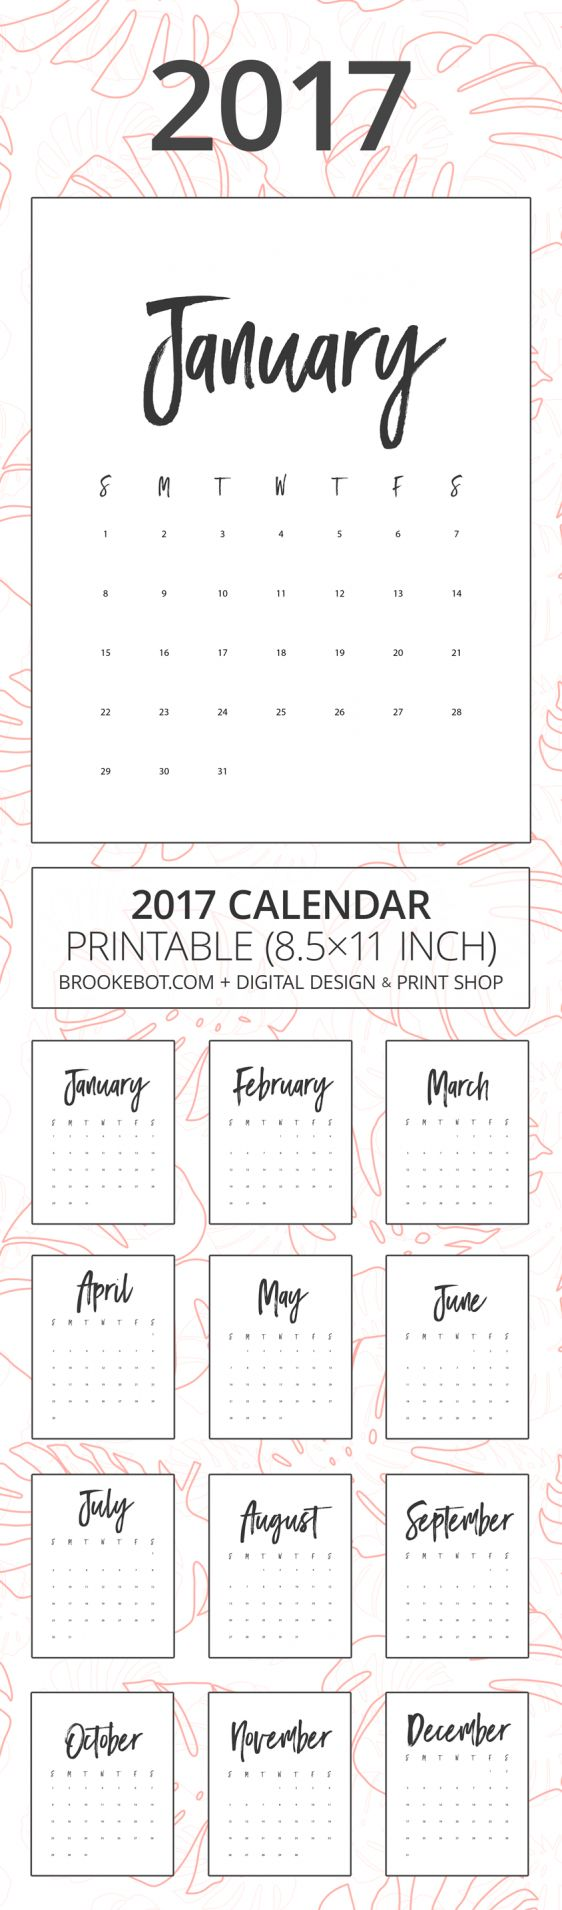 2017 Calendar (Printable 8.5×11 Inch) w/ Black & White Brush